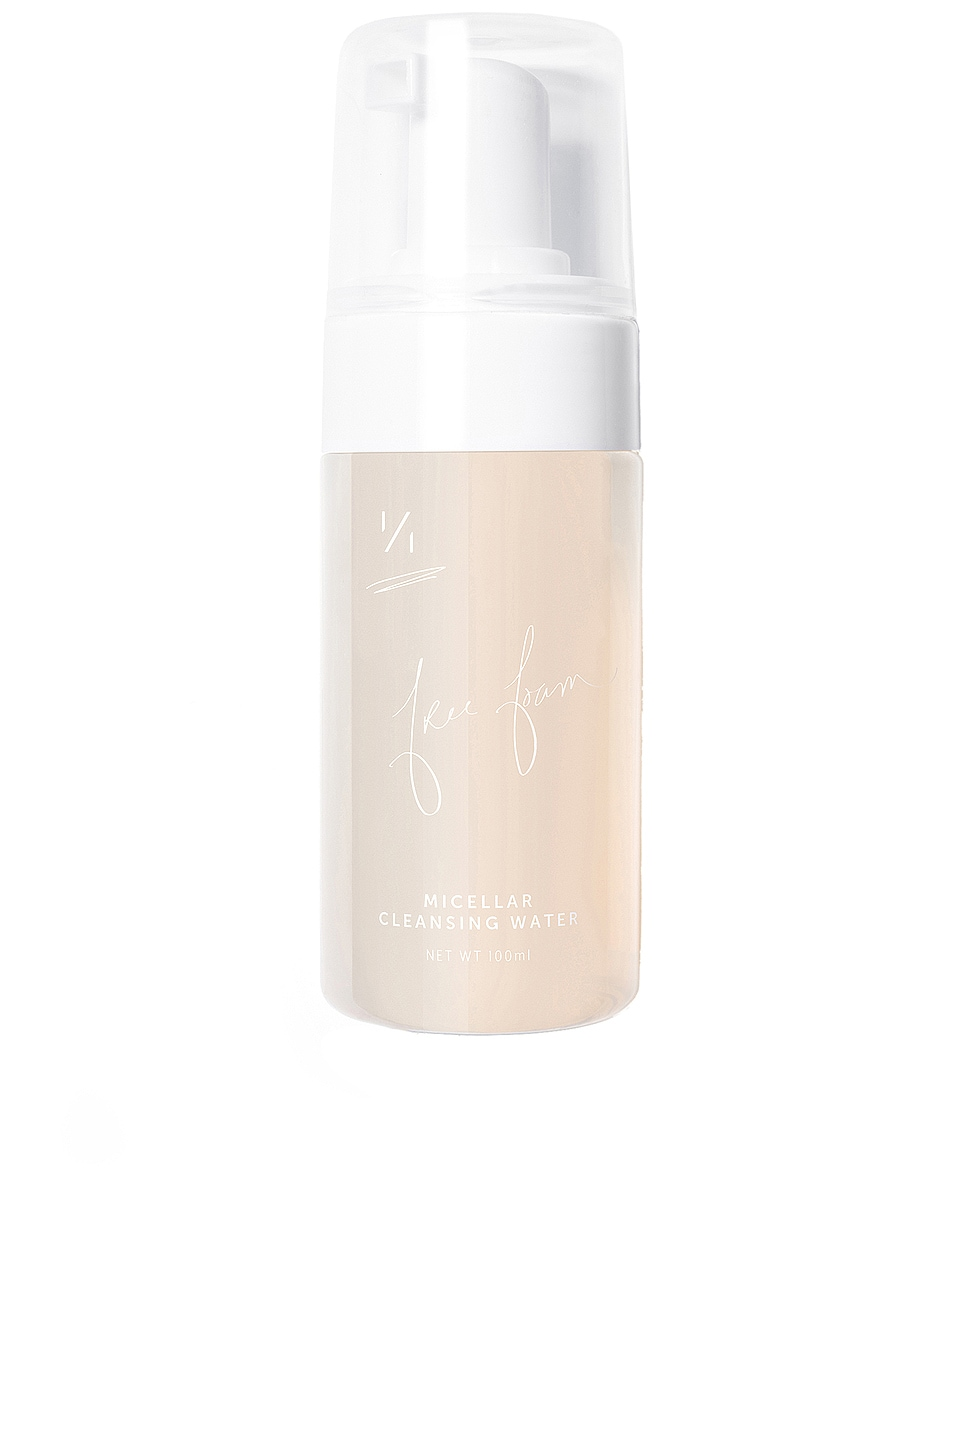 One Over One Free Foam Micellar Cleansing Water